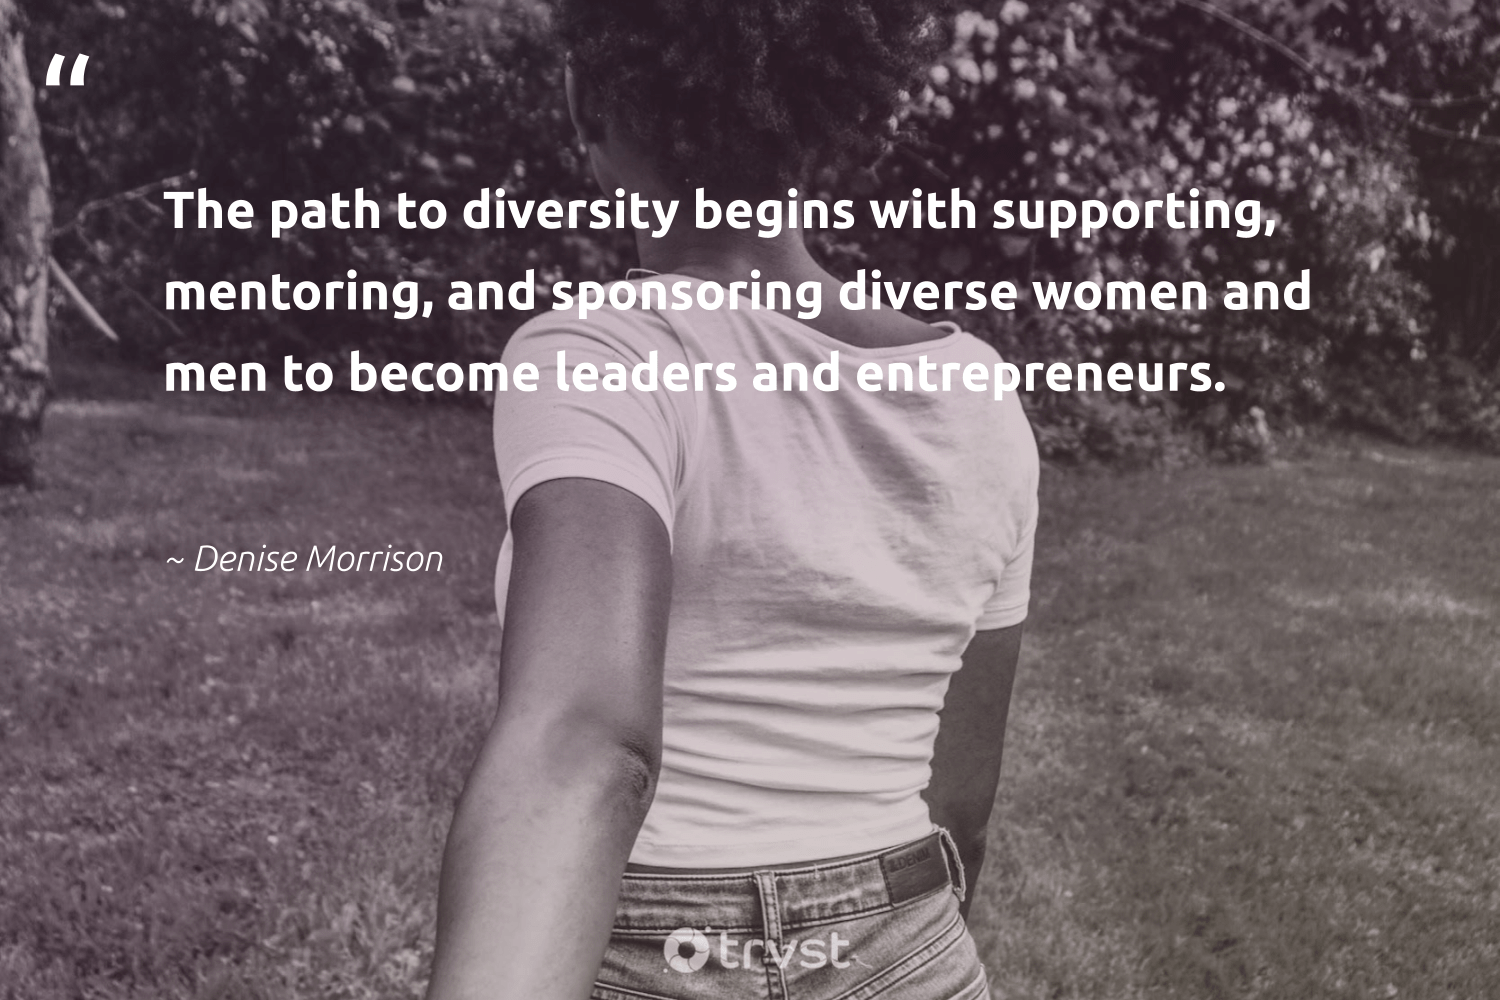 """The path to diversity begins with supporting, mentoring, and sponsoring diverse women and men to become leaders and entrepreneurs.""  - Denise Morrison #trvst #quotes #diversity #women #mentoring #discrimination #inclusion #socialgood #giveback #socialimpact #representationmatters #makeadifference"